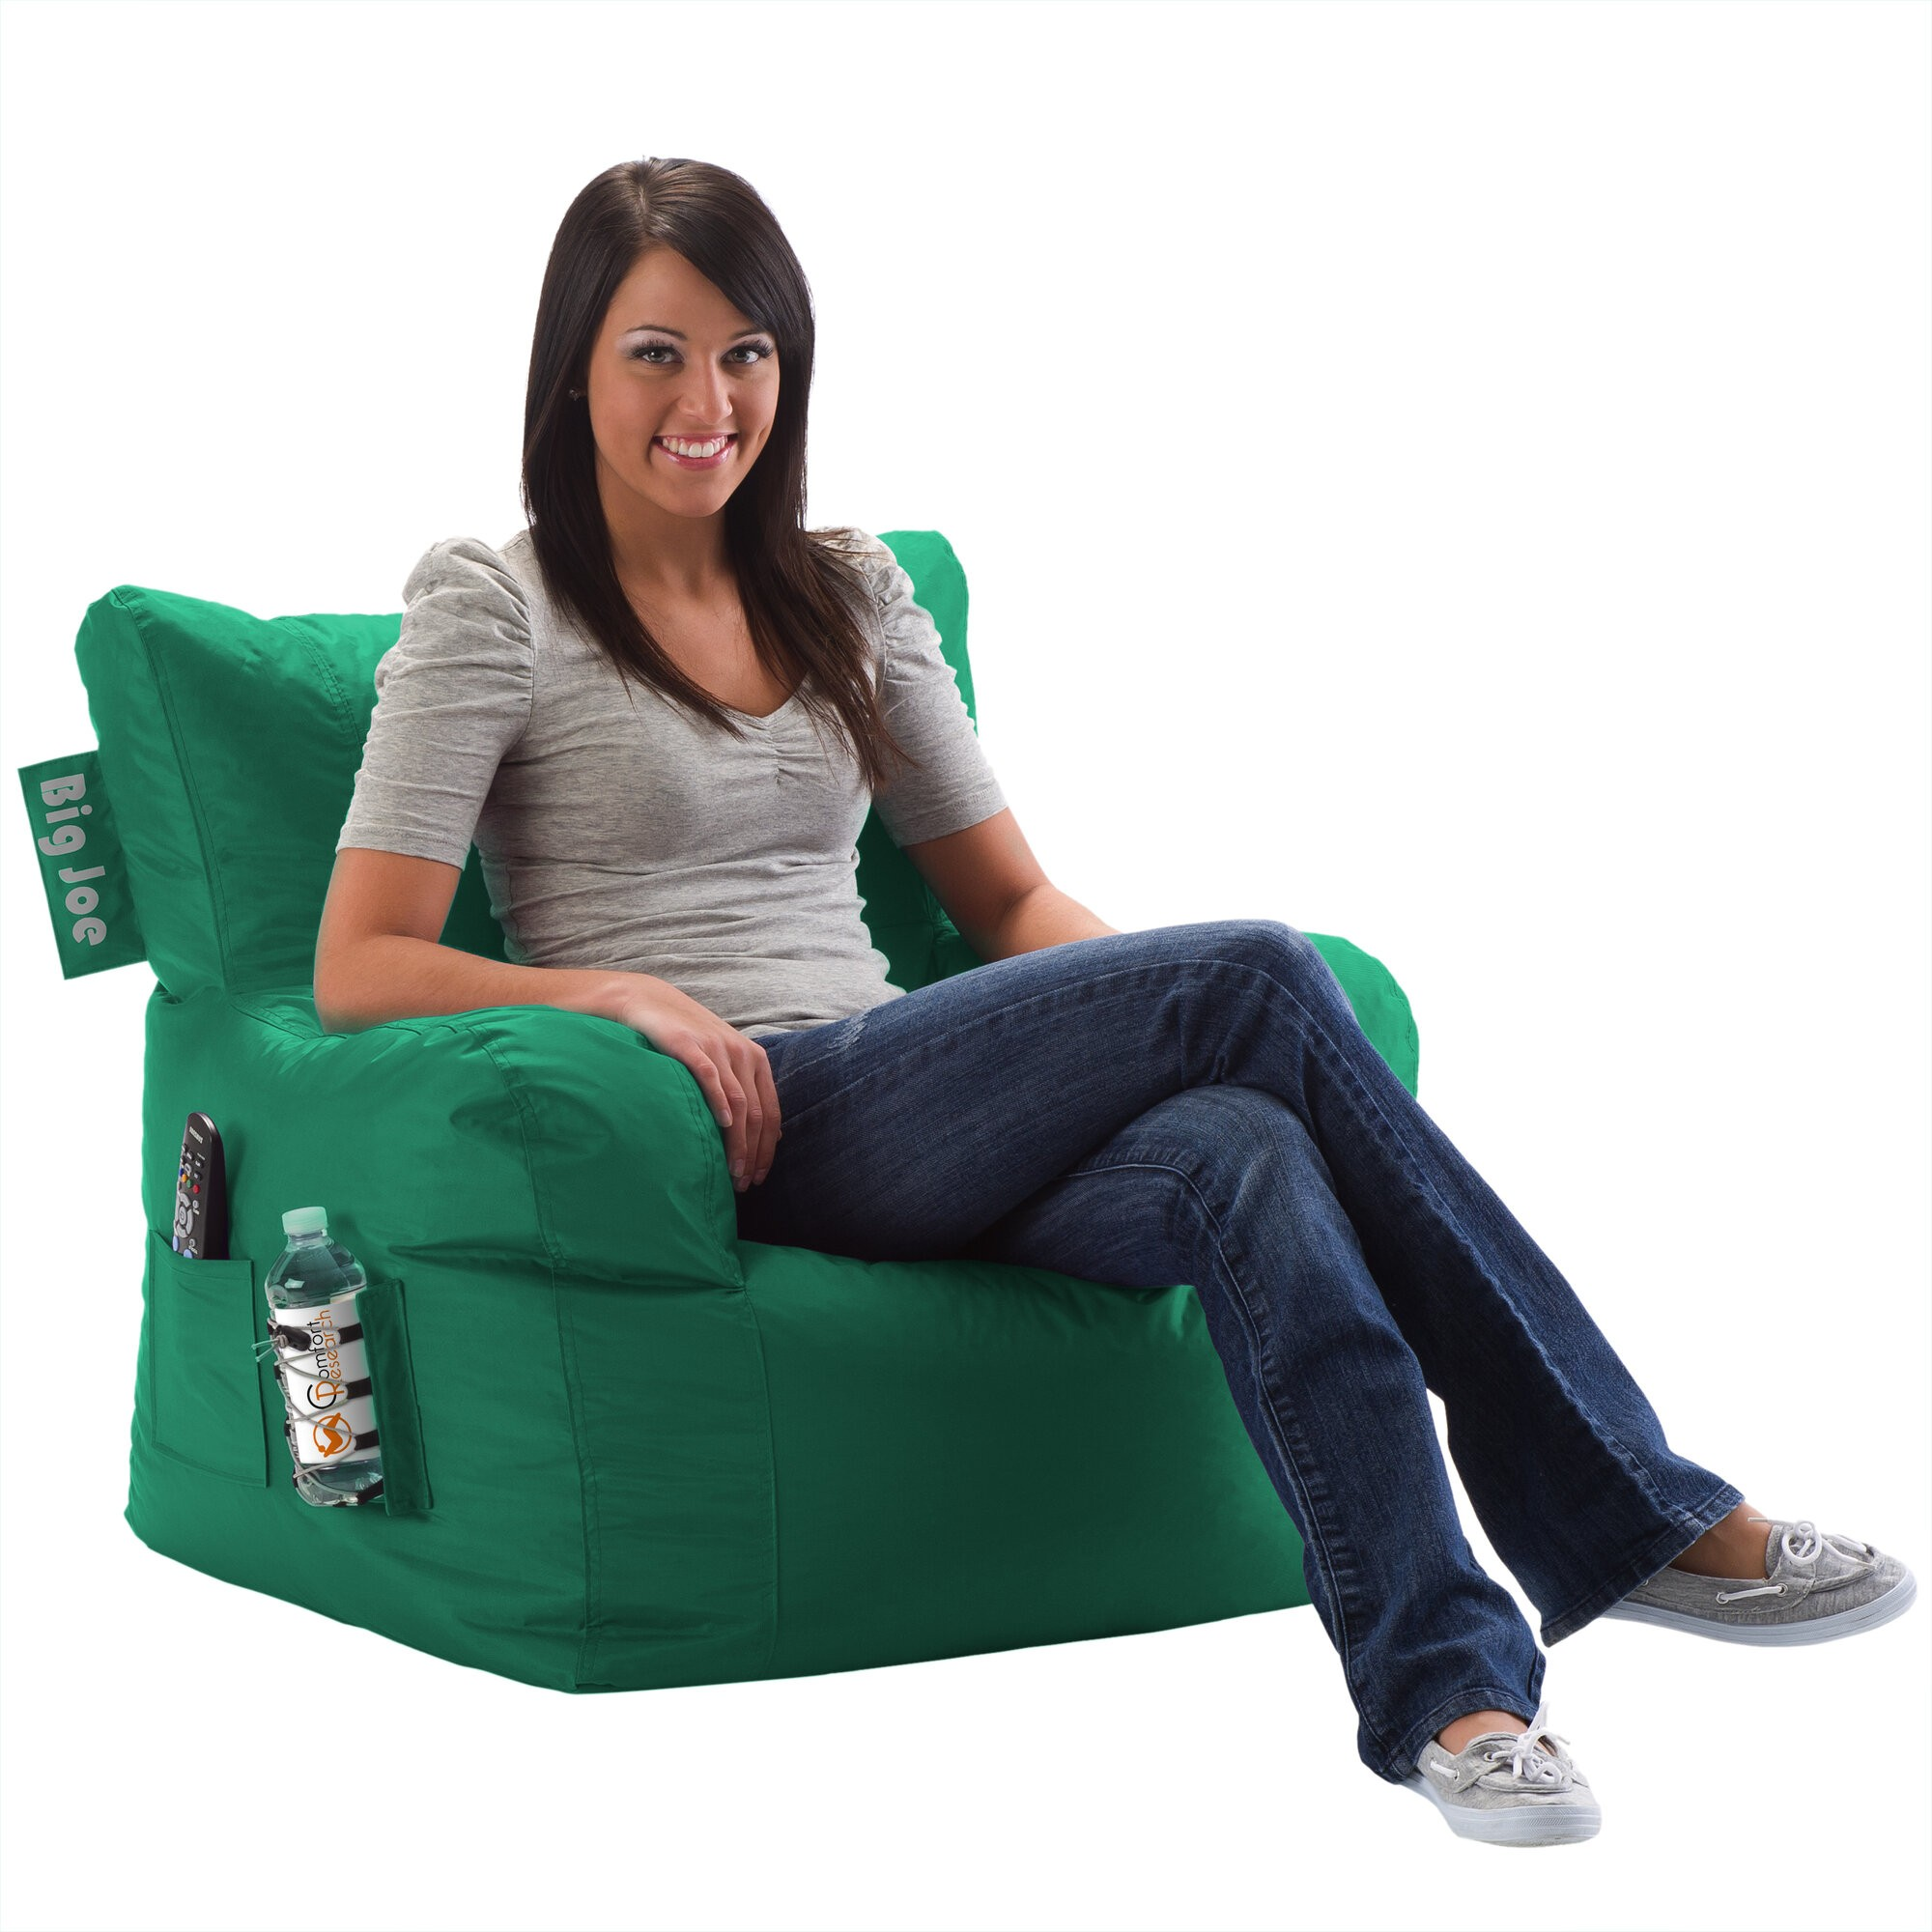 Big Joe Bean Bag Chair